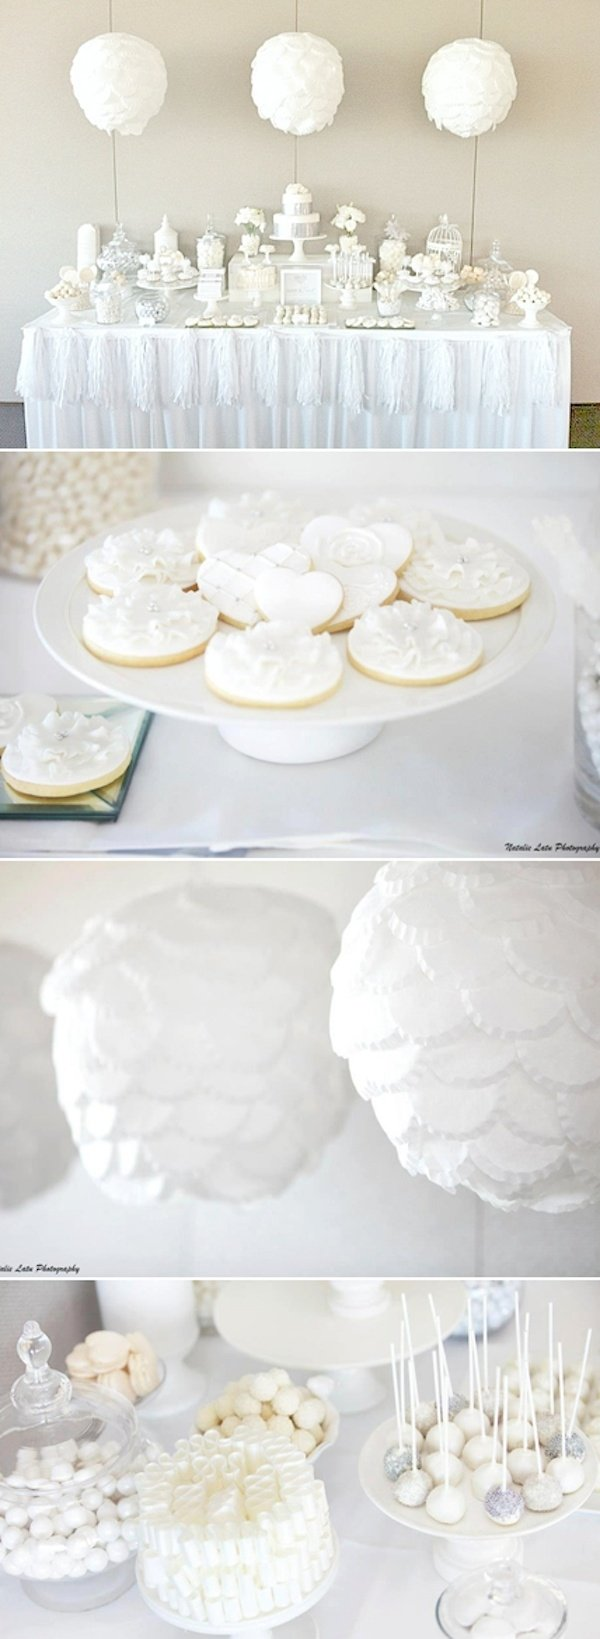 10 Amazing All White Baby Shower Ideas